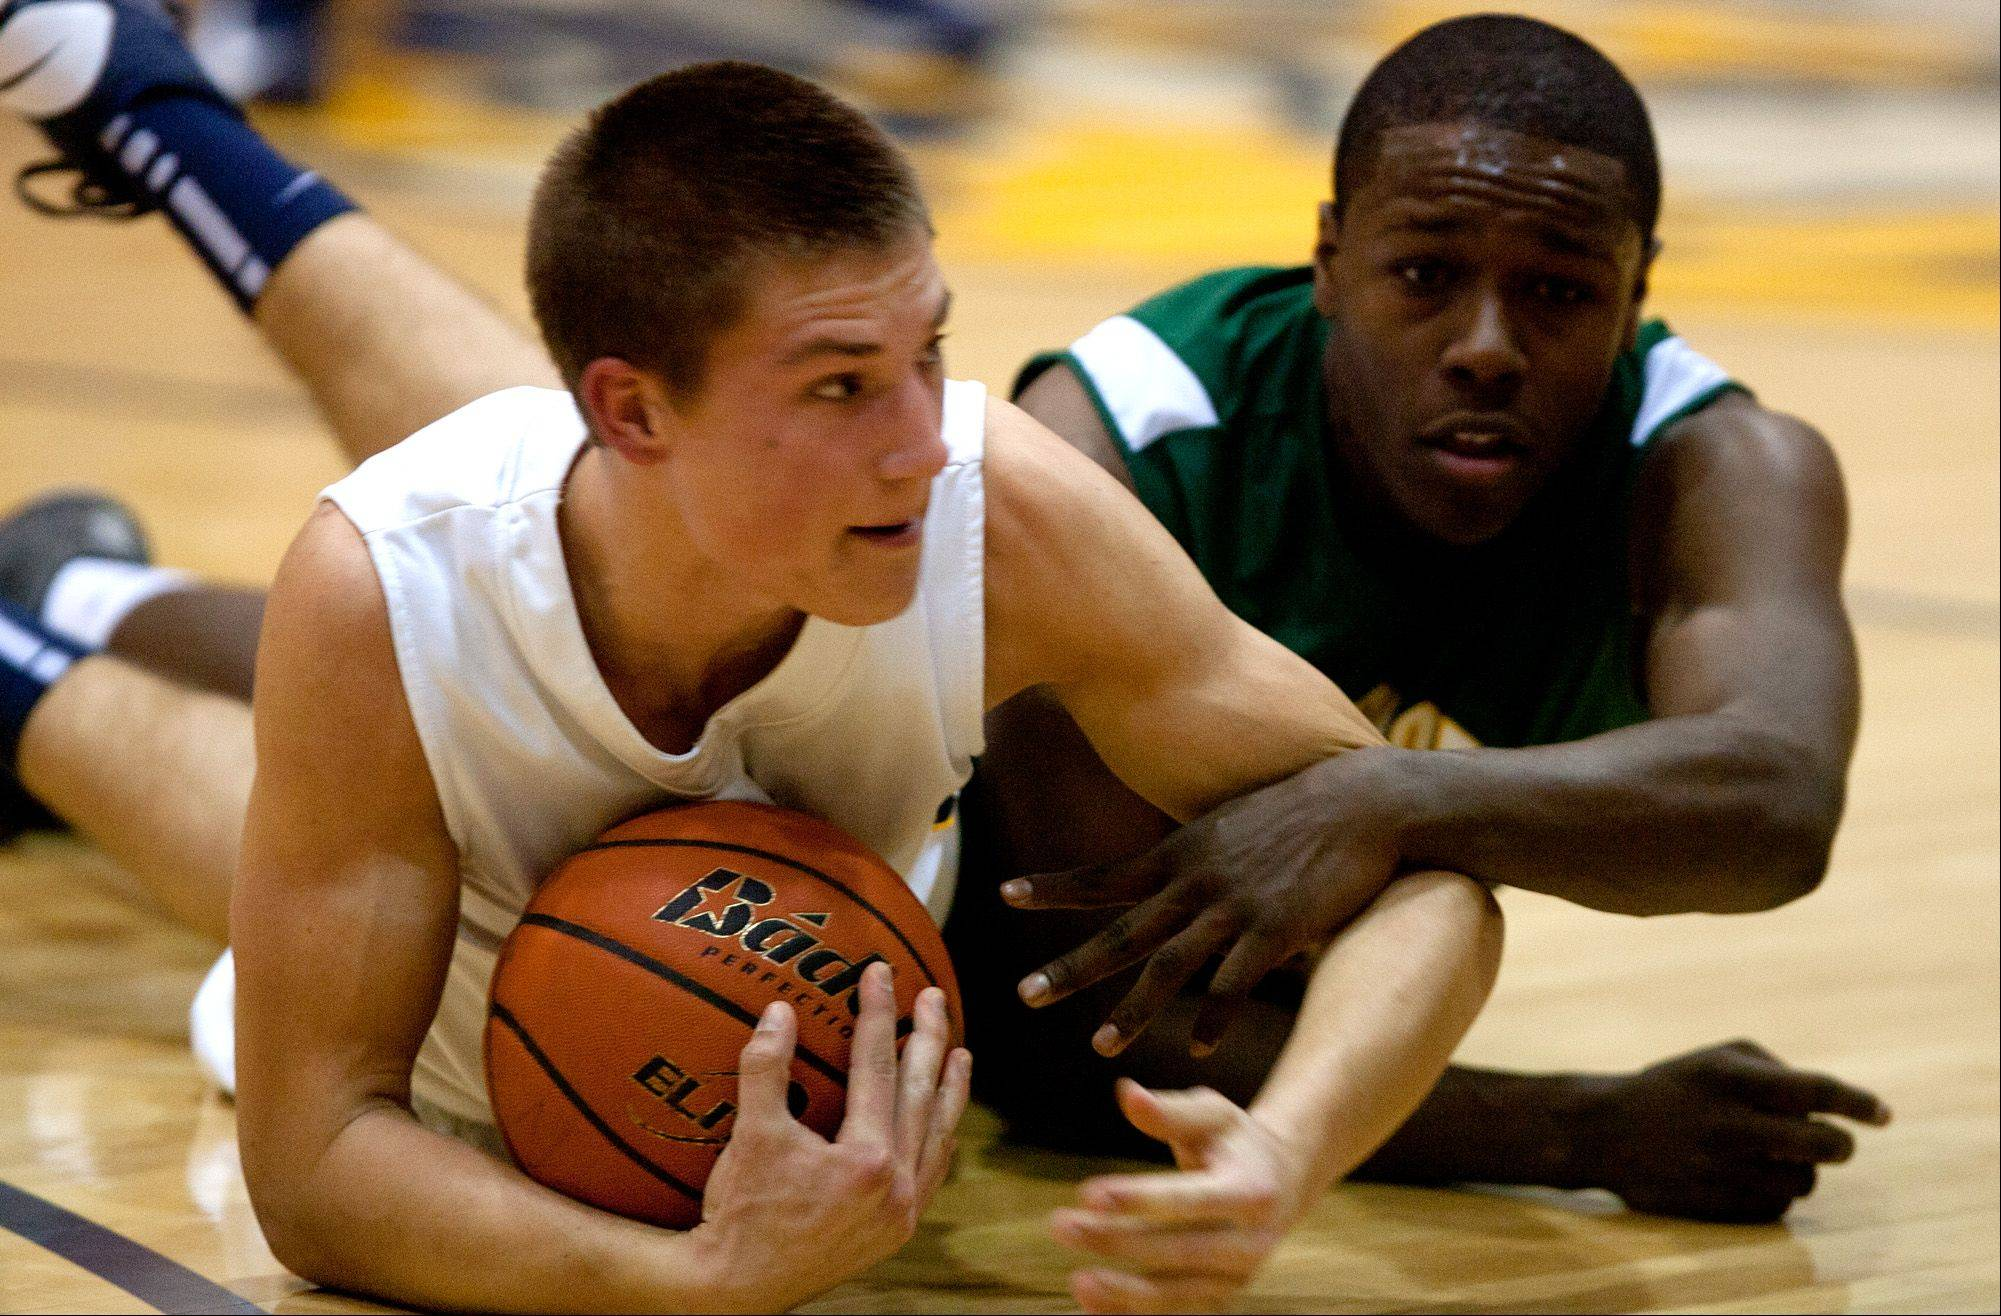 Neuqua Valley's Brad Mikulecky, left, battles Waubonsie Valley's Jared Brownridge, right.